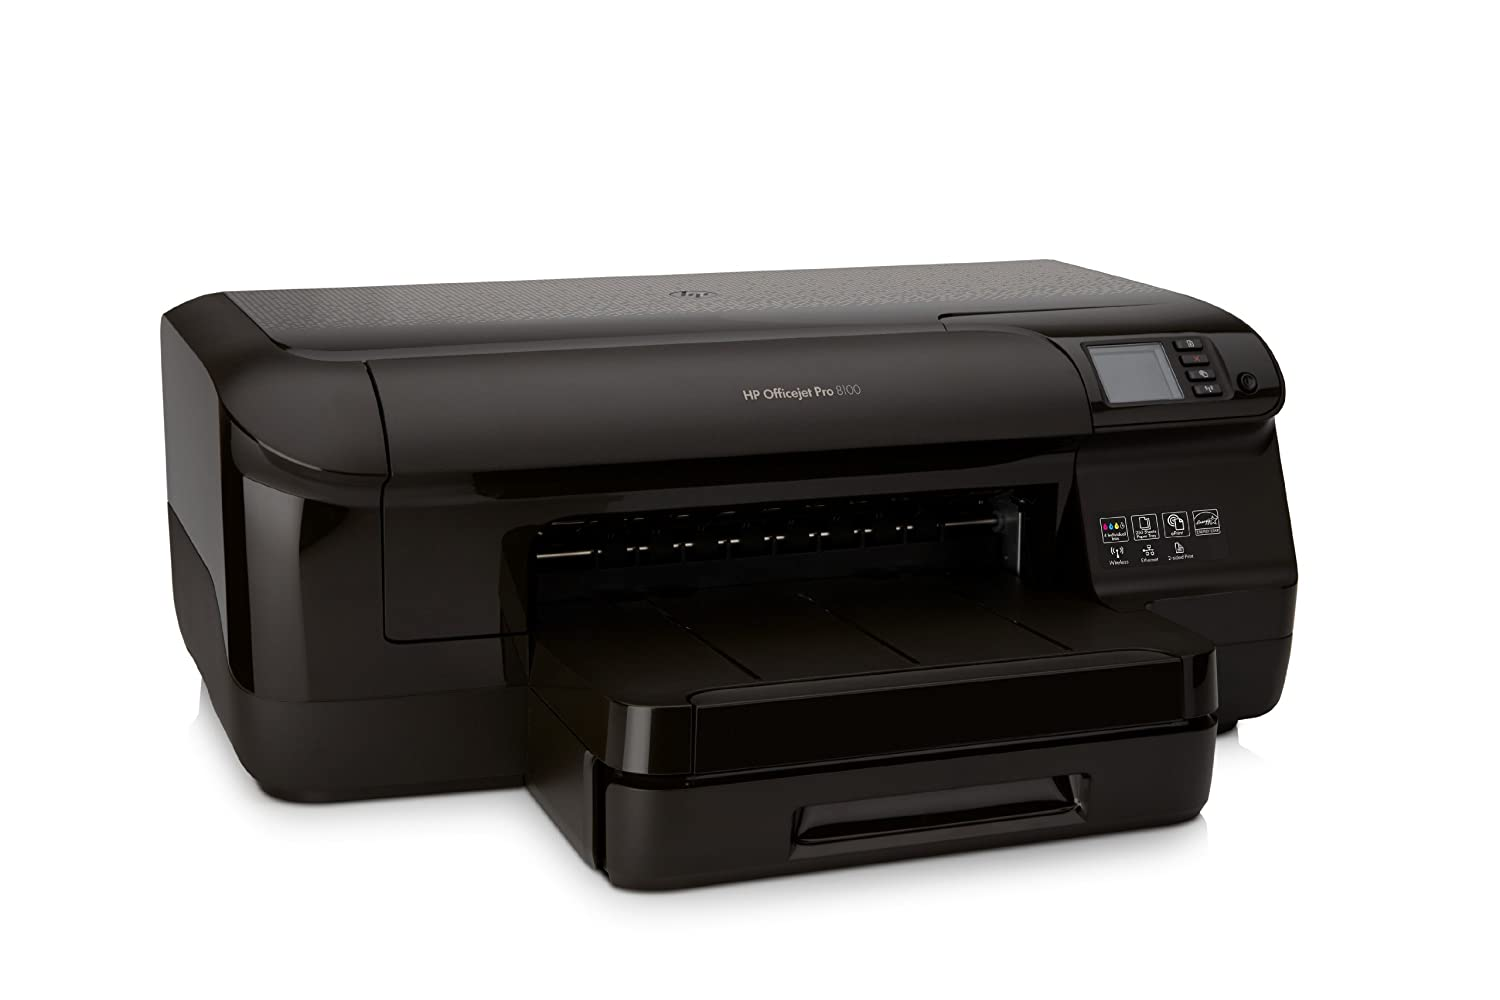 Amazon.com: HP OfficeJet Pro 8100 Wireless Photo Printer with Mobile  Printing (CM752A): Electronics